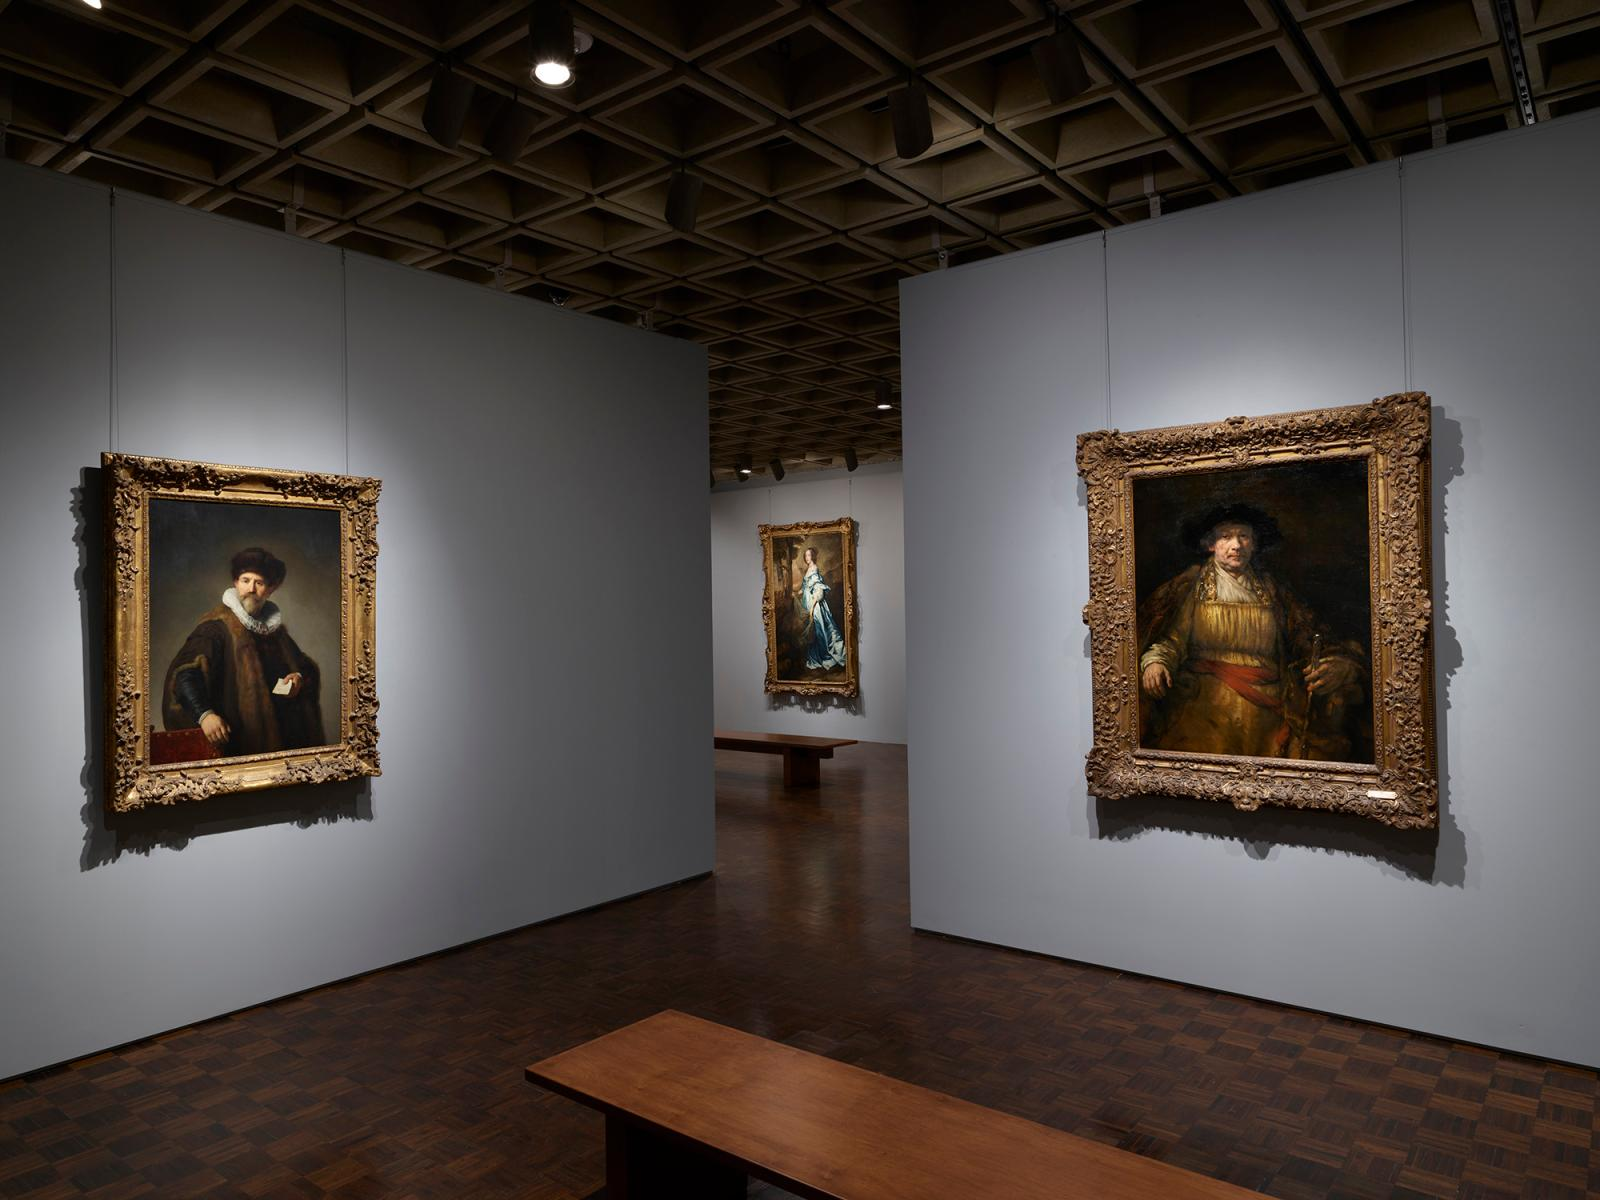 In this second-floor gallery, Rembrandt's Nicolaes Ruts (1631) (left) may be compared with the much later Self-Portrait (1658) (right).Ima